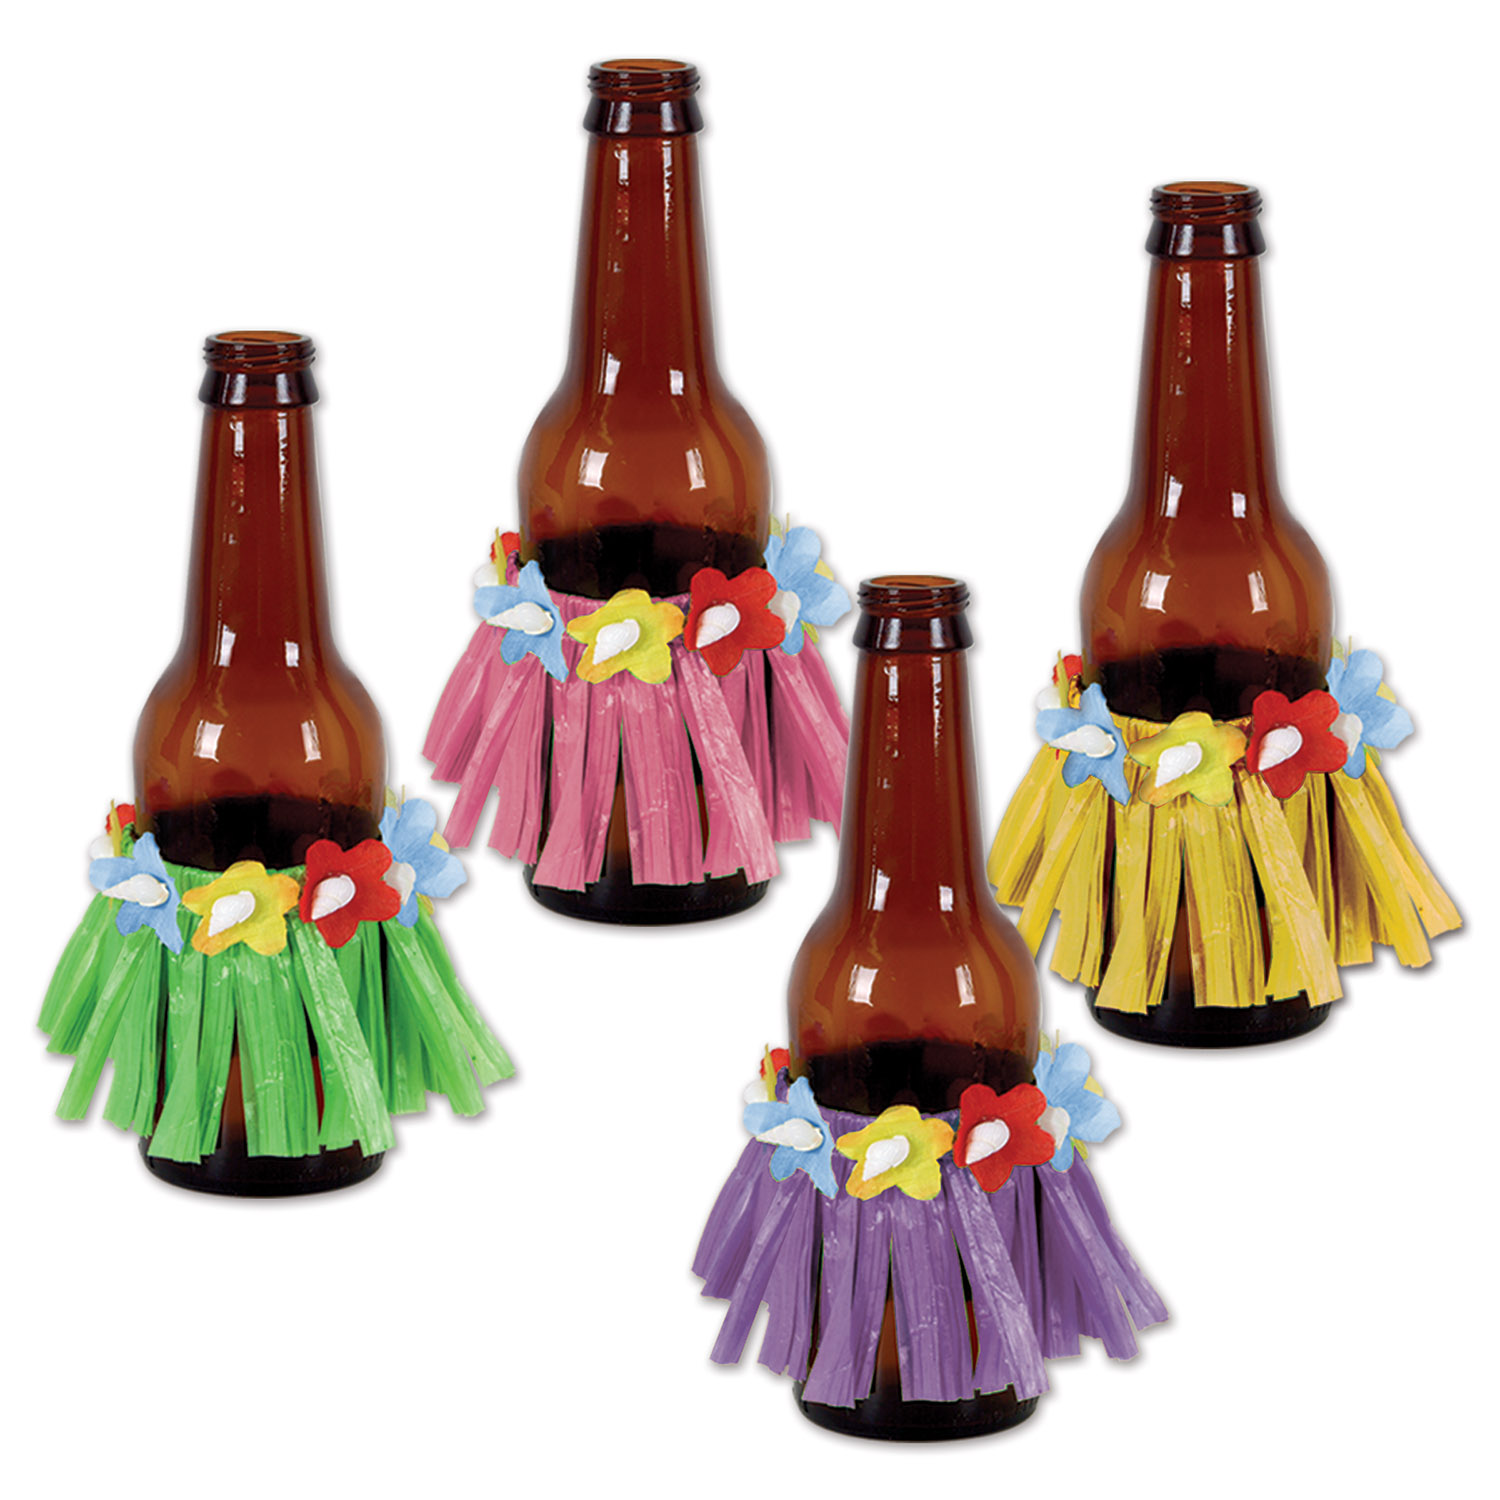 Drink Hula Skirts (Pack of 48) Drink Hula Skirts, decoration, party favor, luau, new years eve, wholesale, inexpensive, bulk